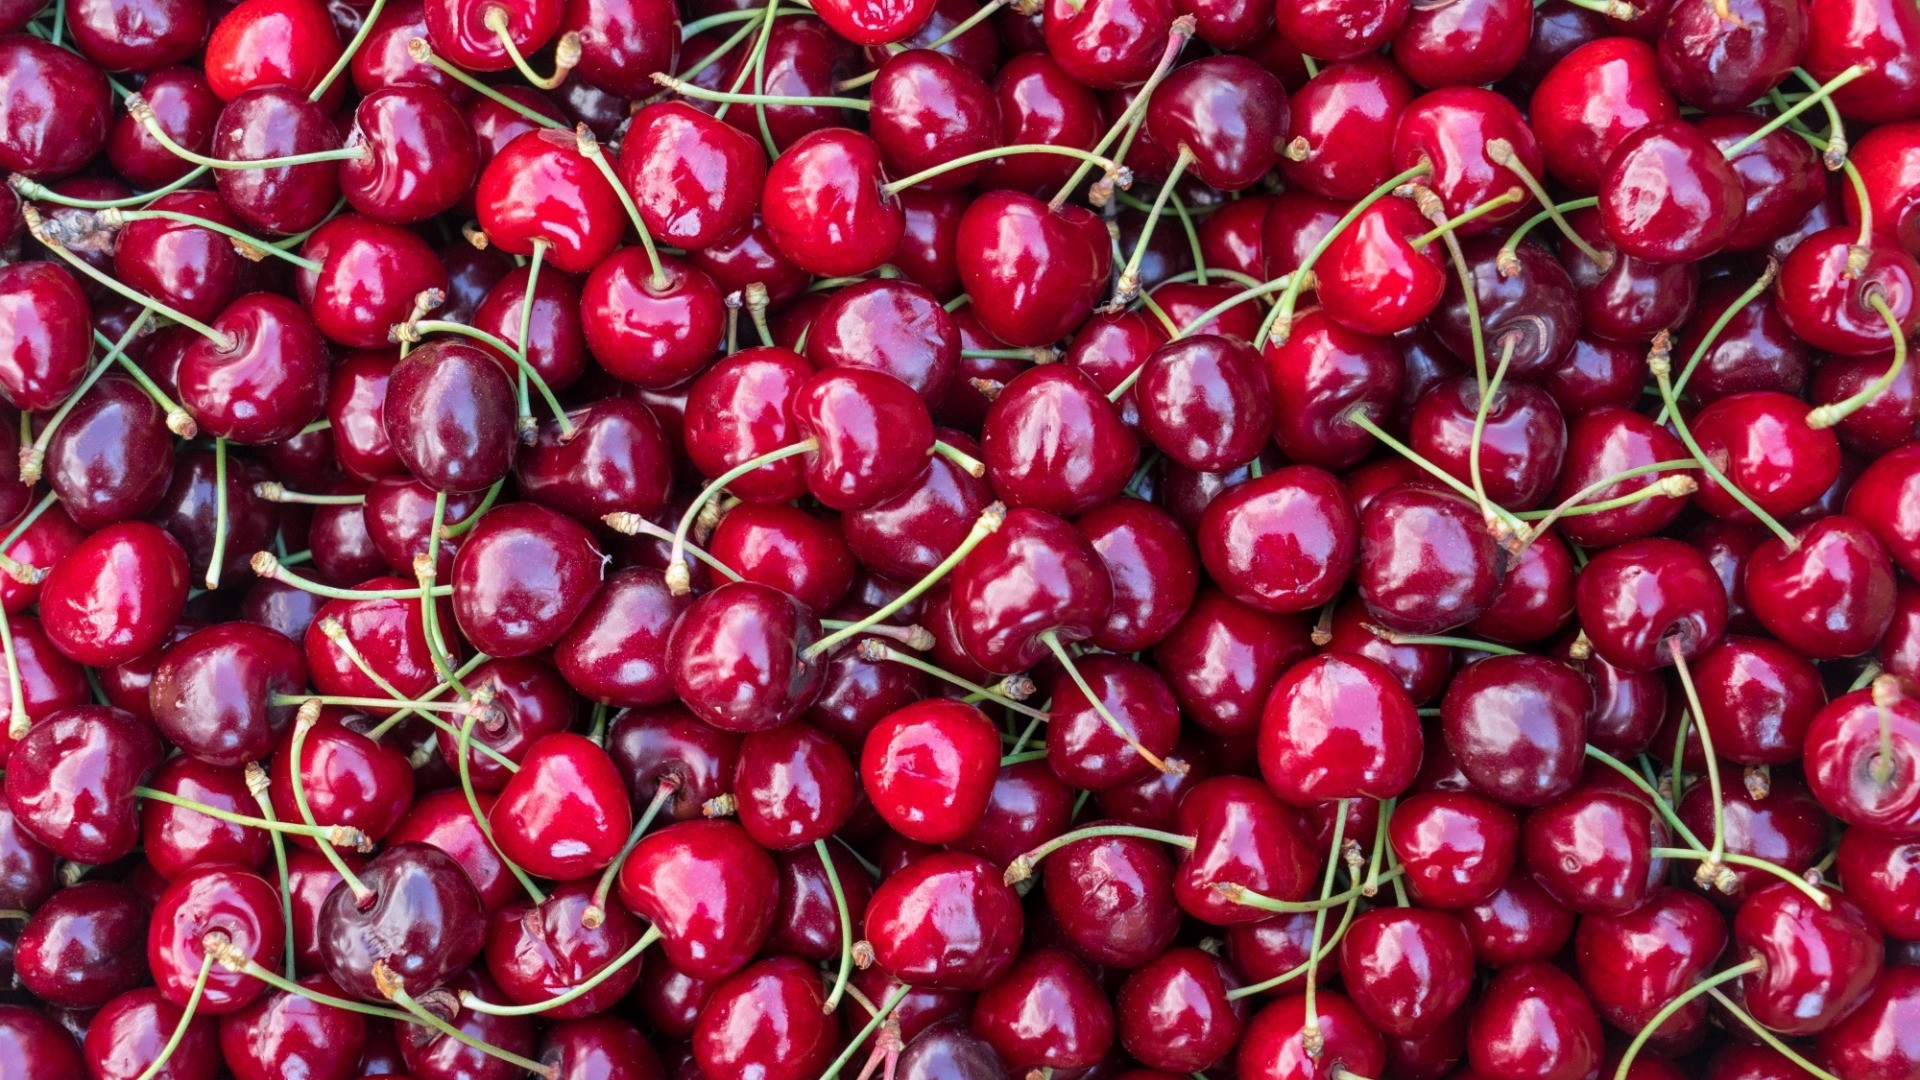 Cherry Free Wallpaper and Background